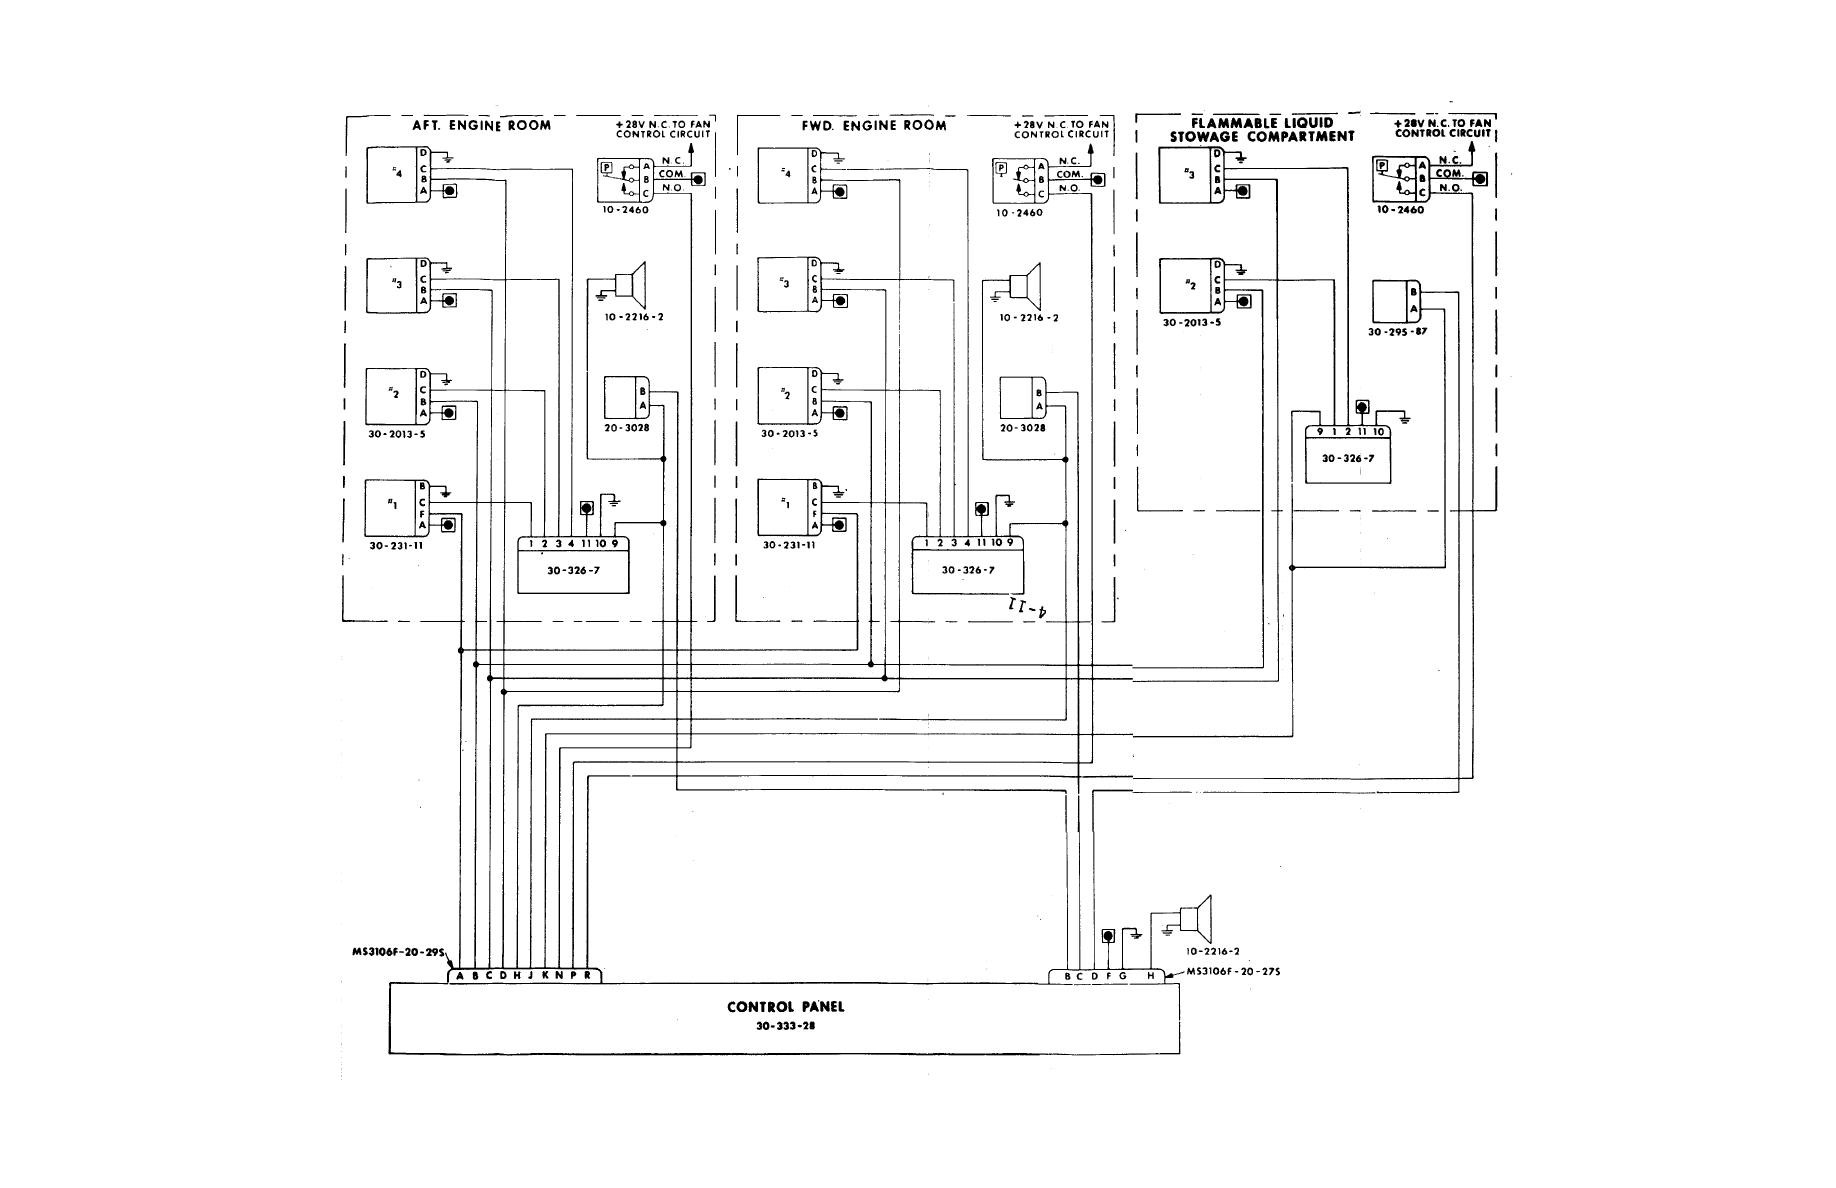 hight resolution of class b fire alarm wiring diagram collection tm 55 1905 219 14 im to wiring